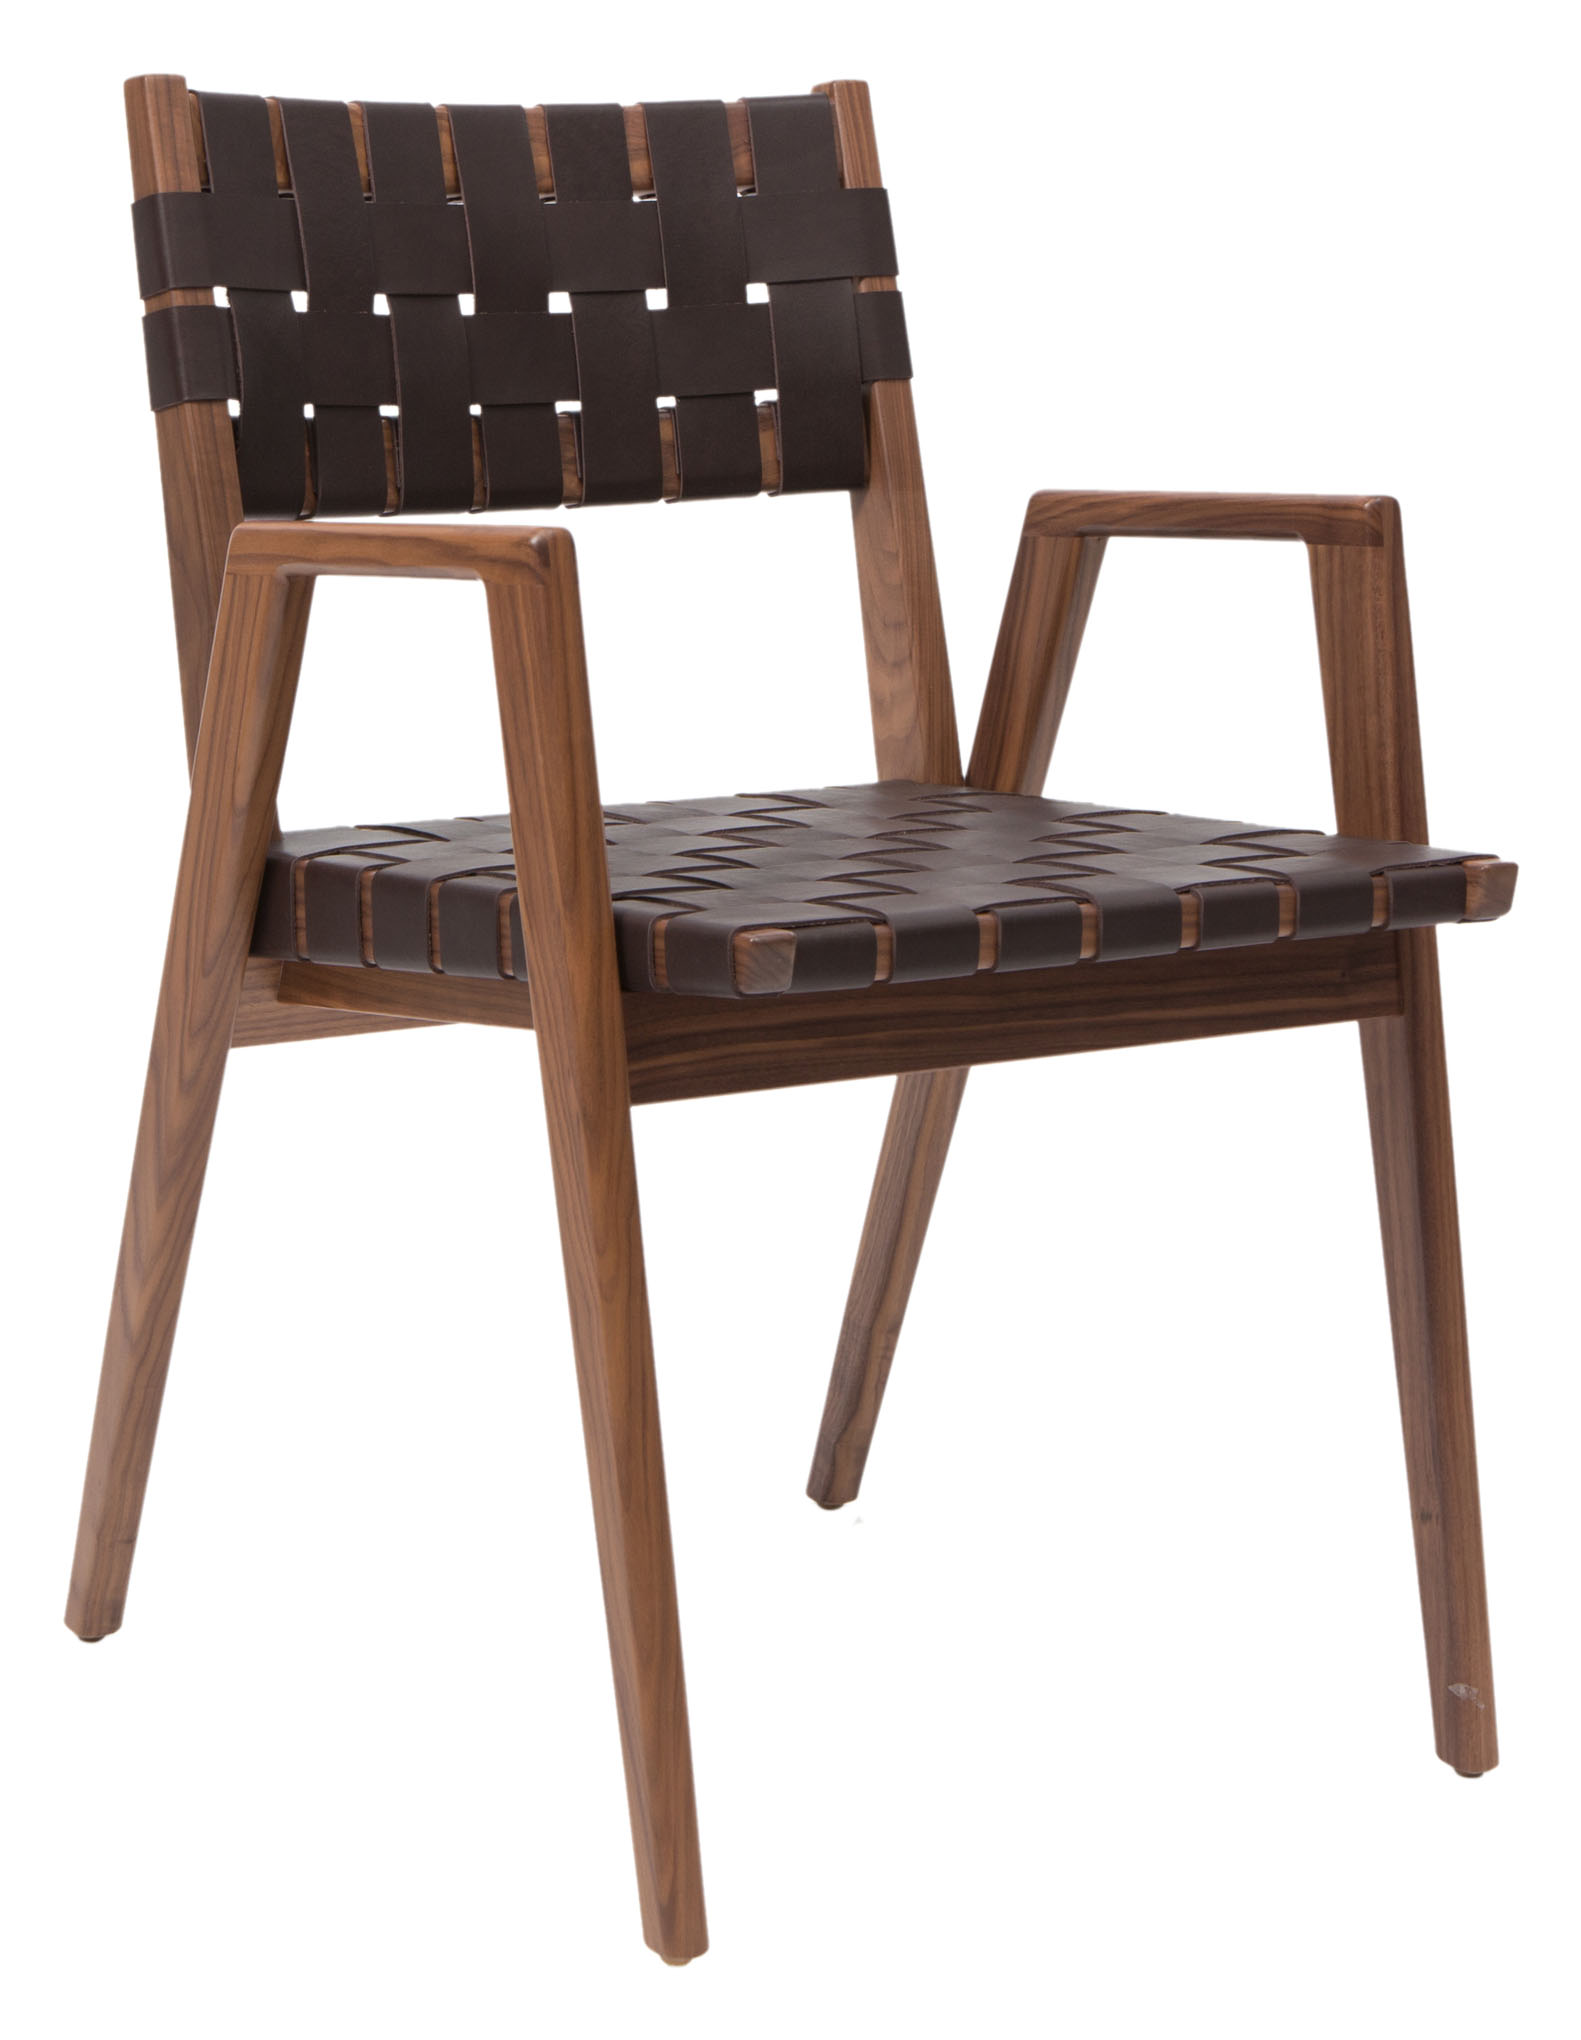 Woven Leather Dining Arm Chair - WDC 600 - Mid-Century Modern Dining